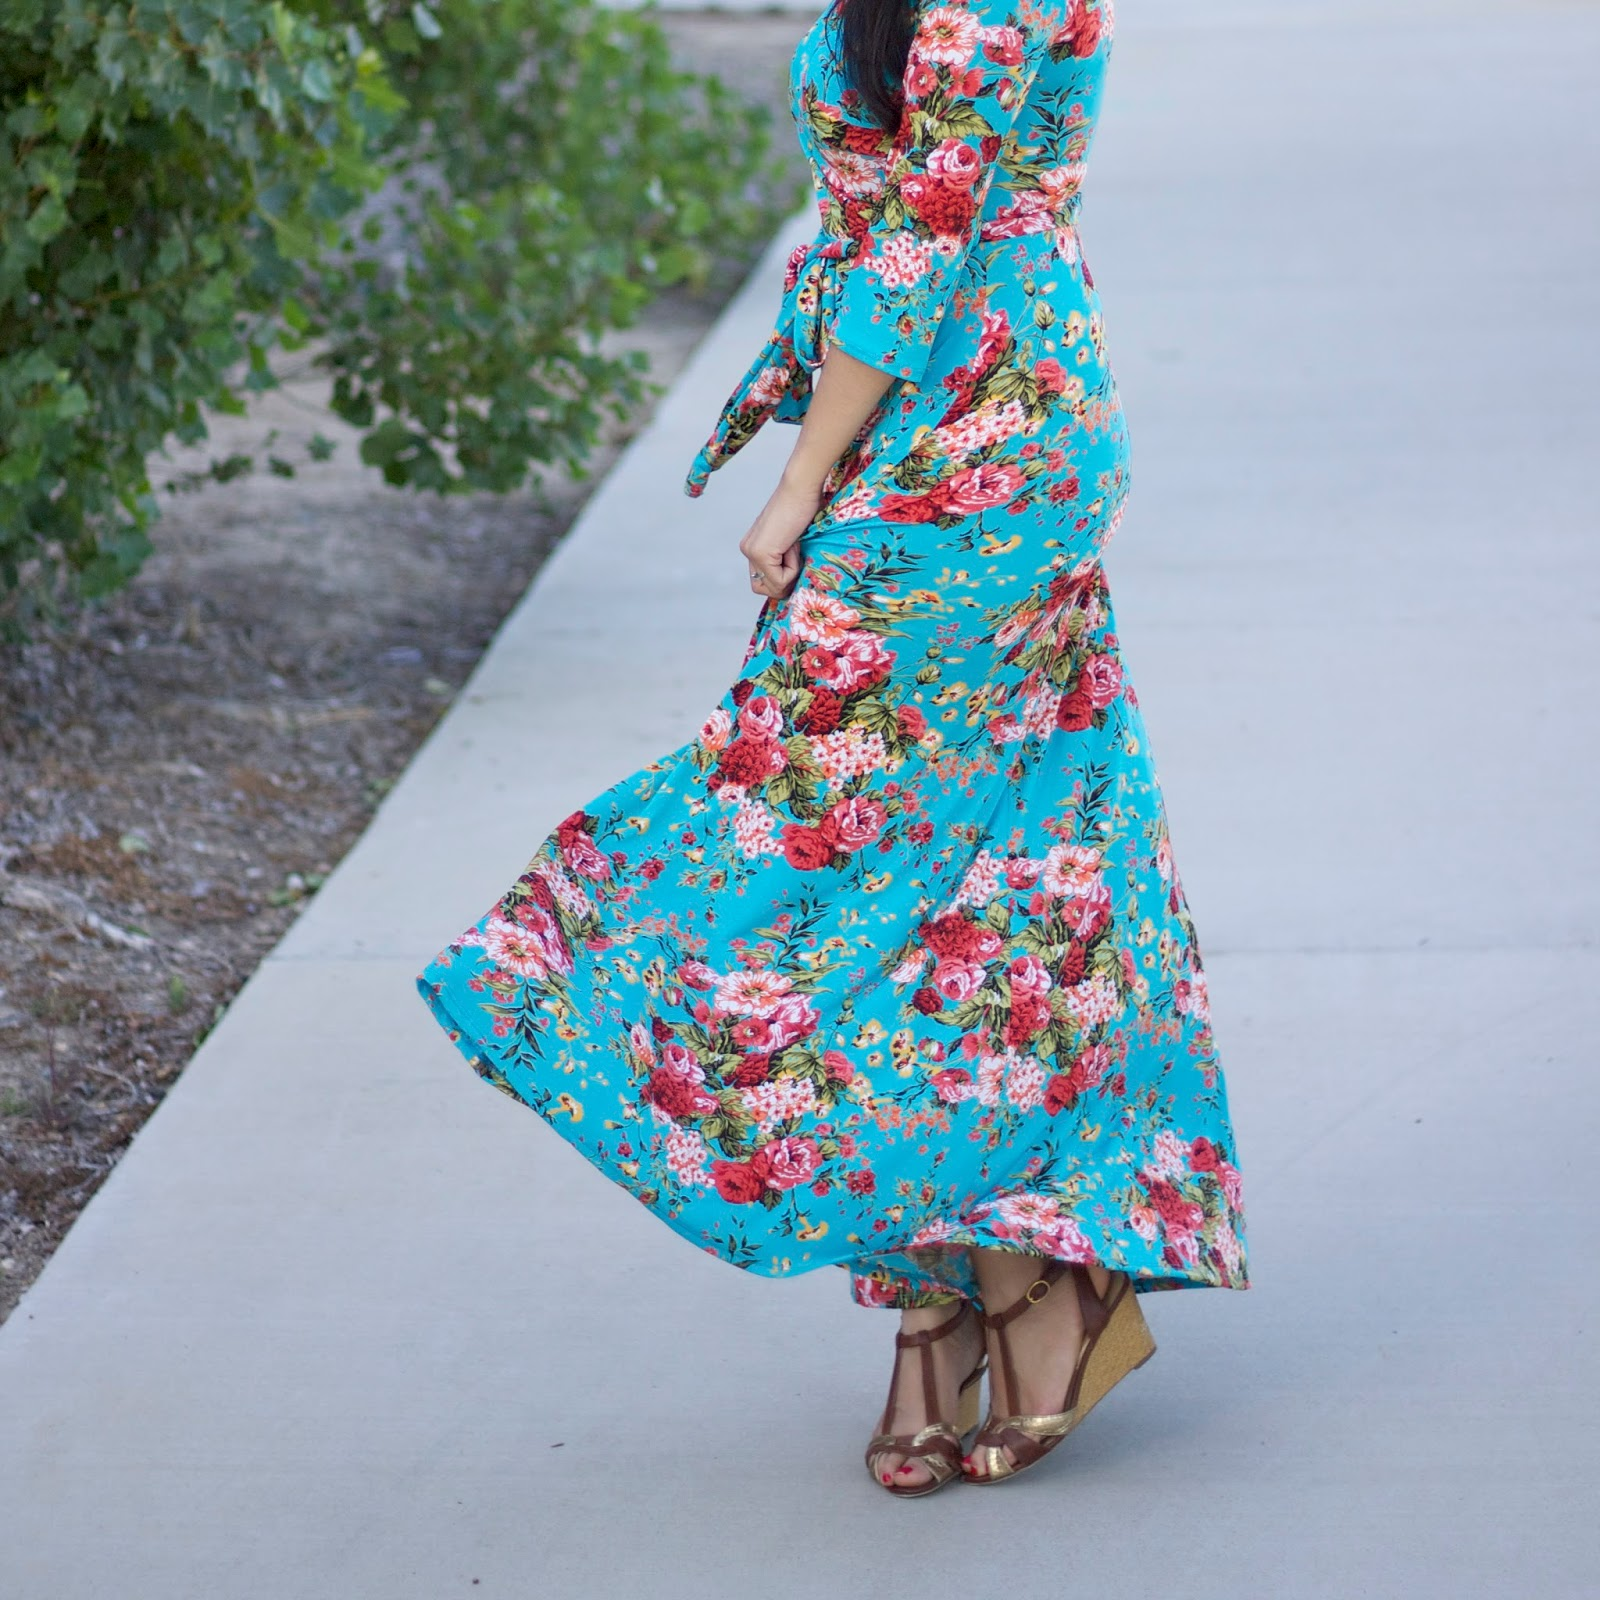 where to find cute maxi dresses, affordable maxi dresses, cute ootd